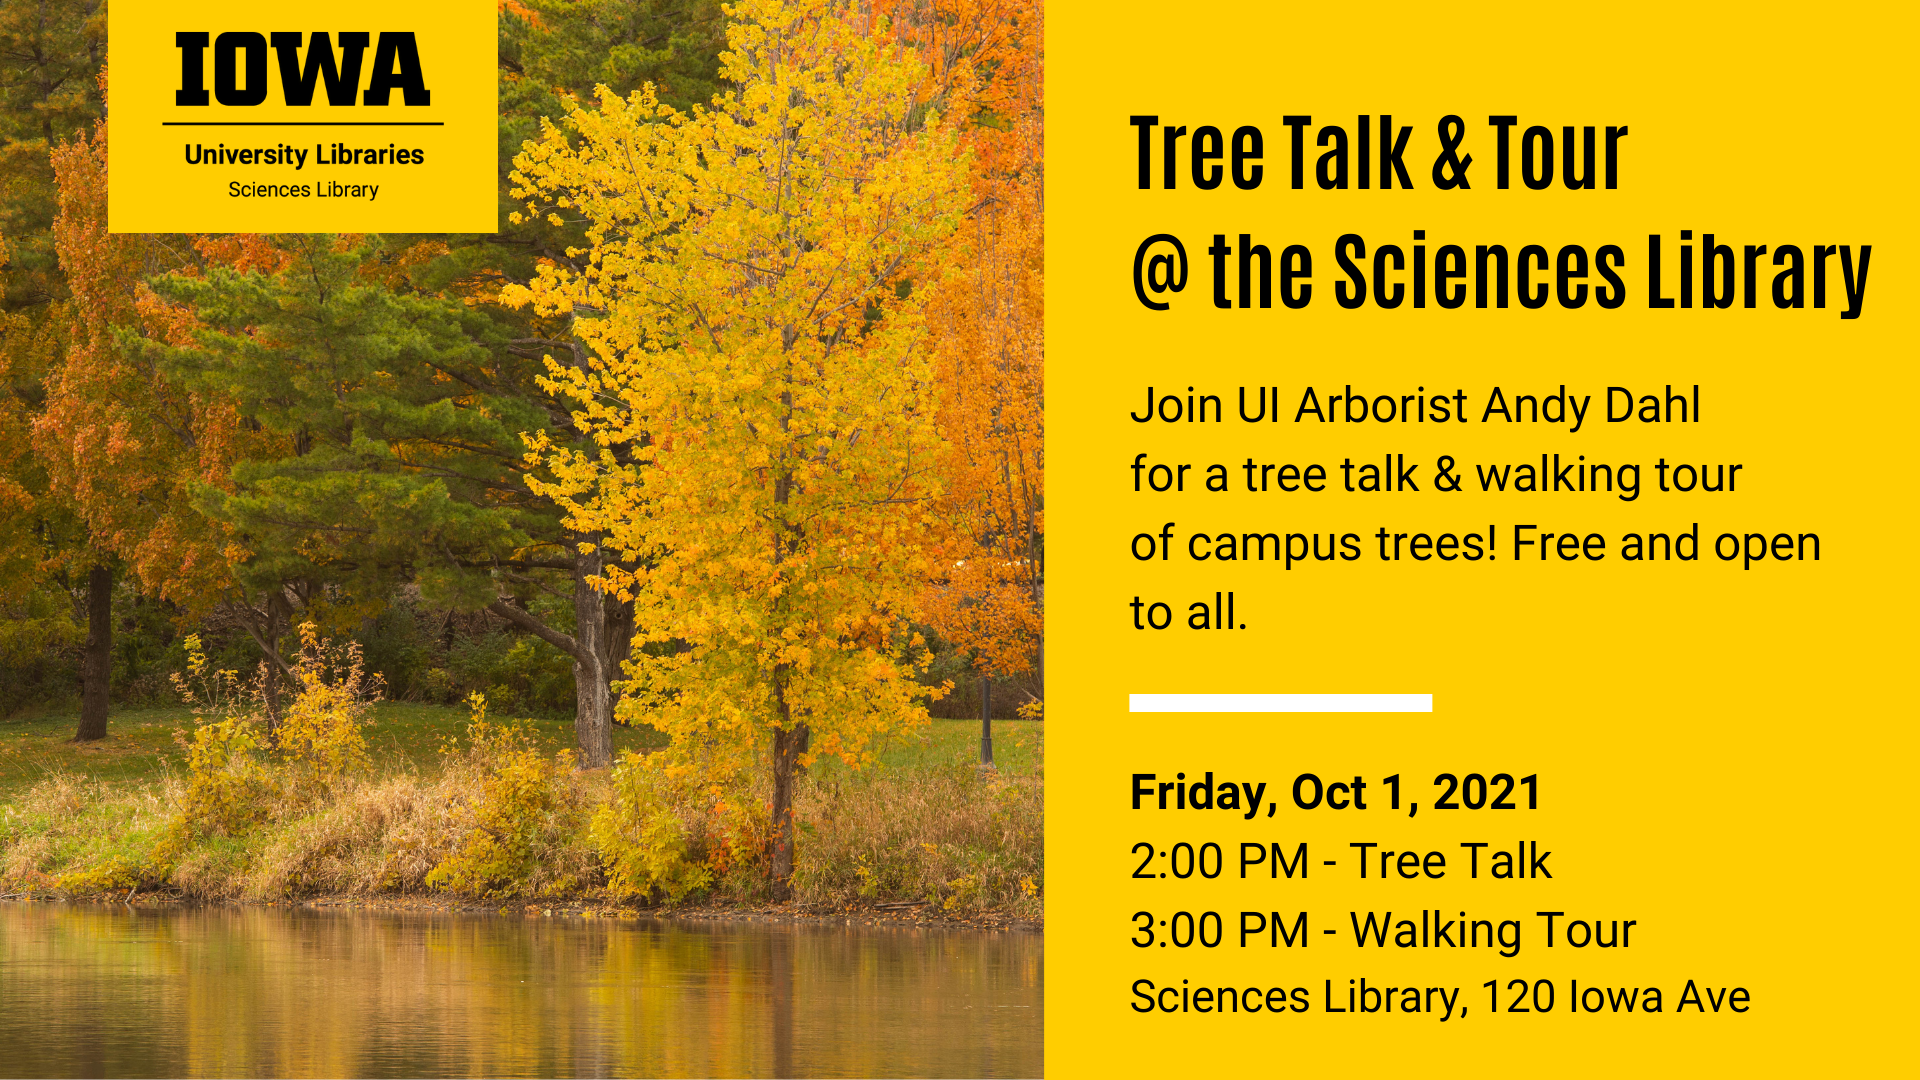 Join Arborist Andy Dahl for a tree talk and tour at the Sciences Library! This program will be held on Friday, October 1, 2021. The tree talk will begin at 2:00 PM on the 3rd floor of the Sciences Library. There will be a short break Free and open to all.